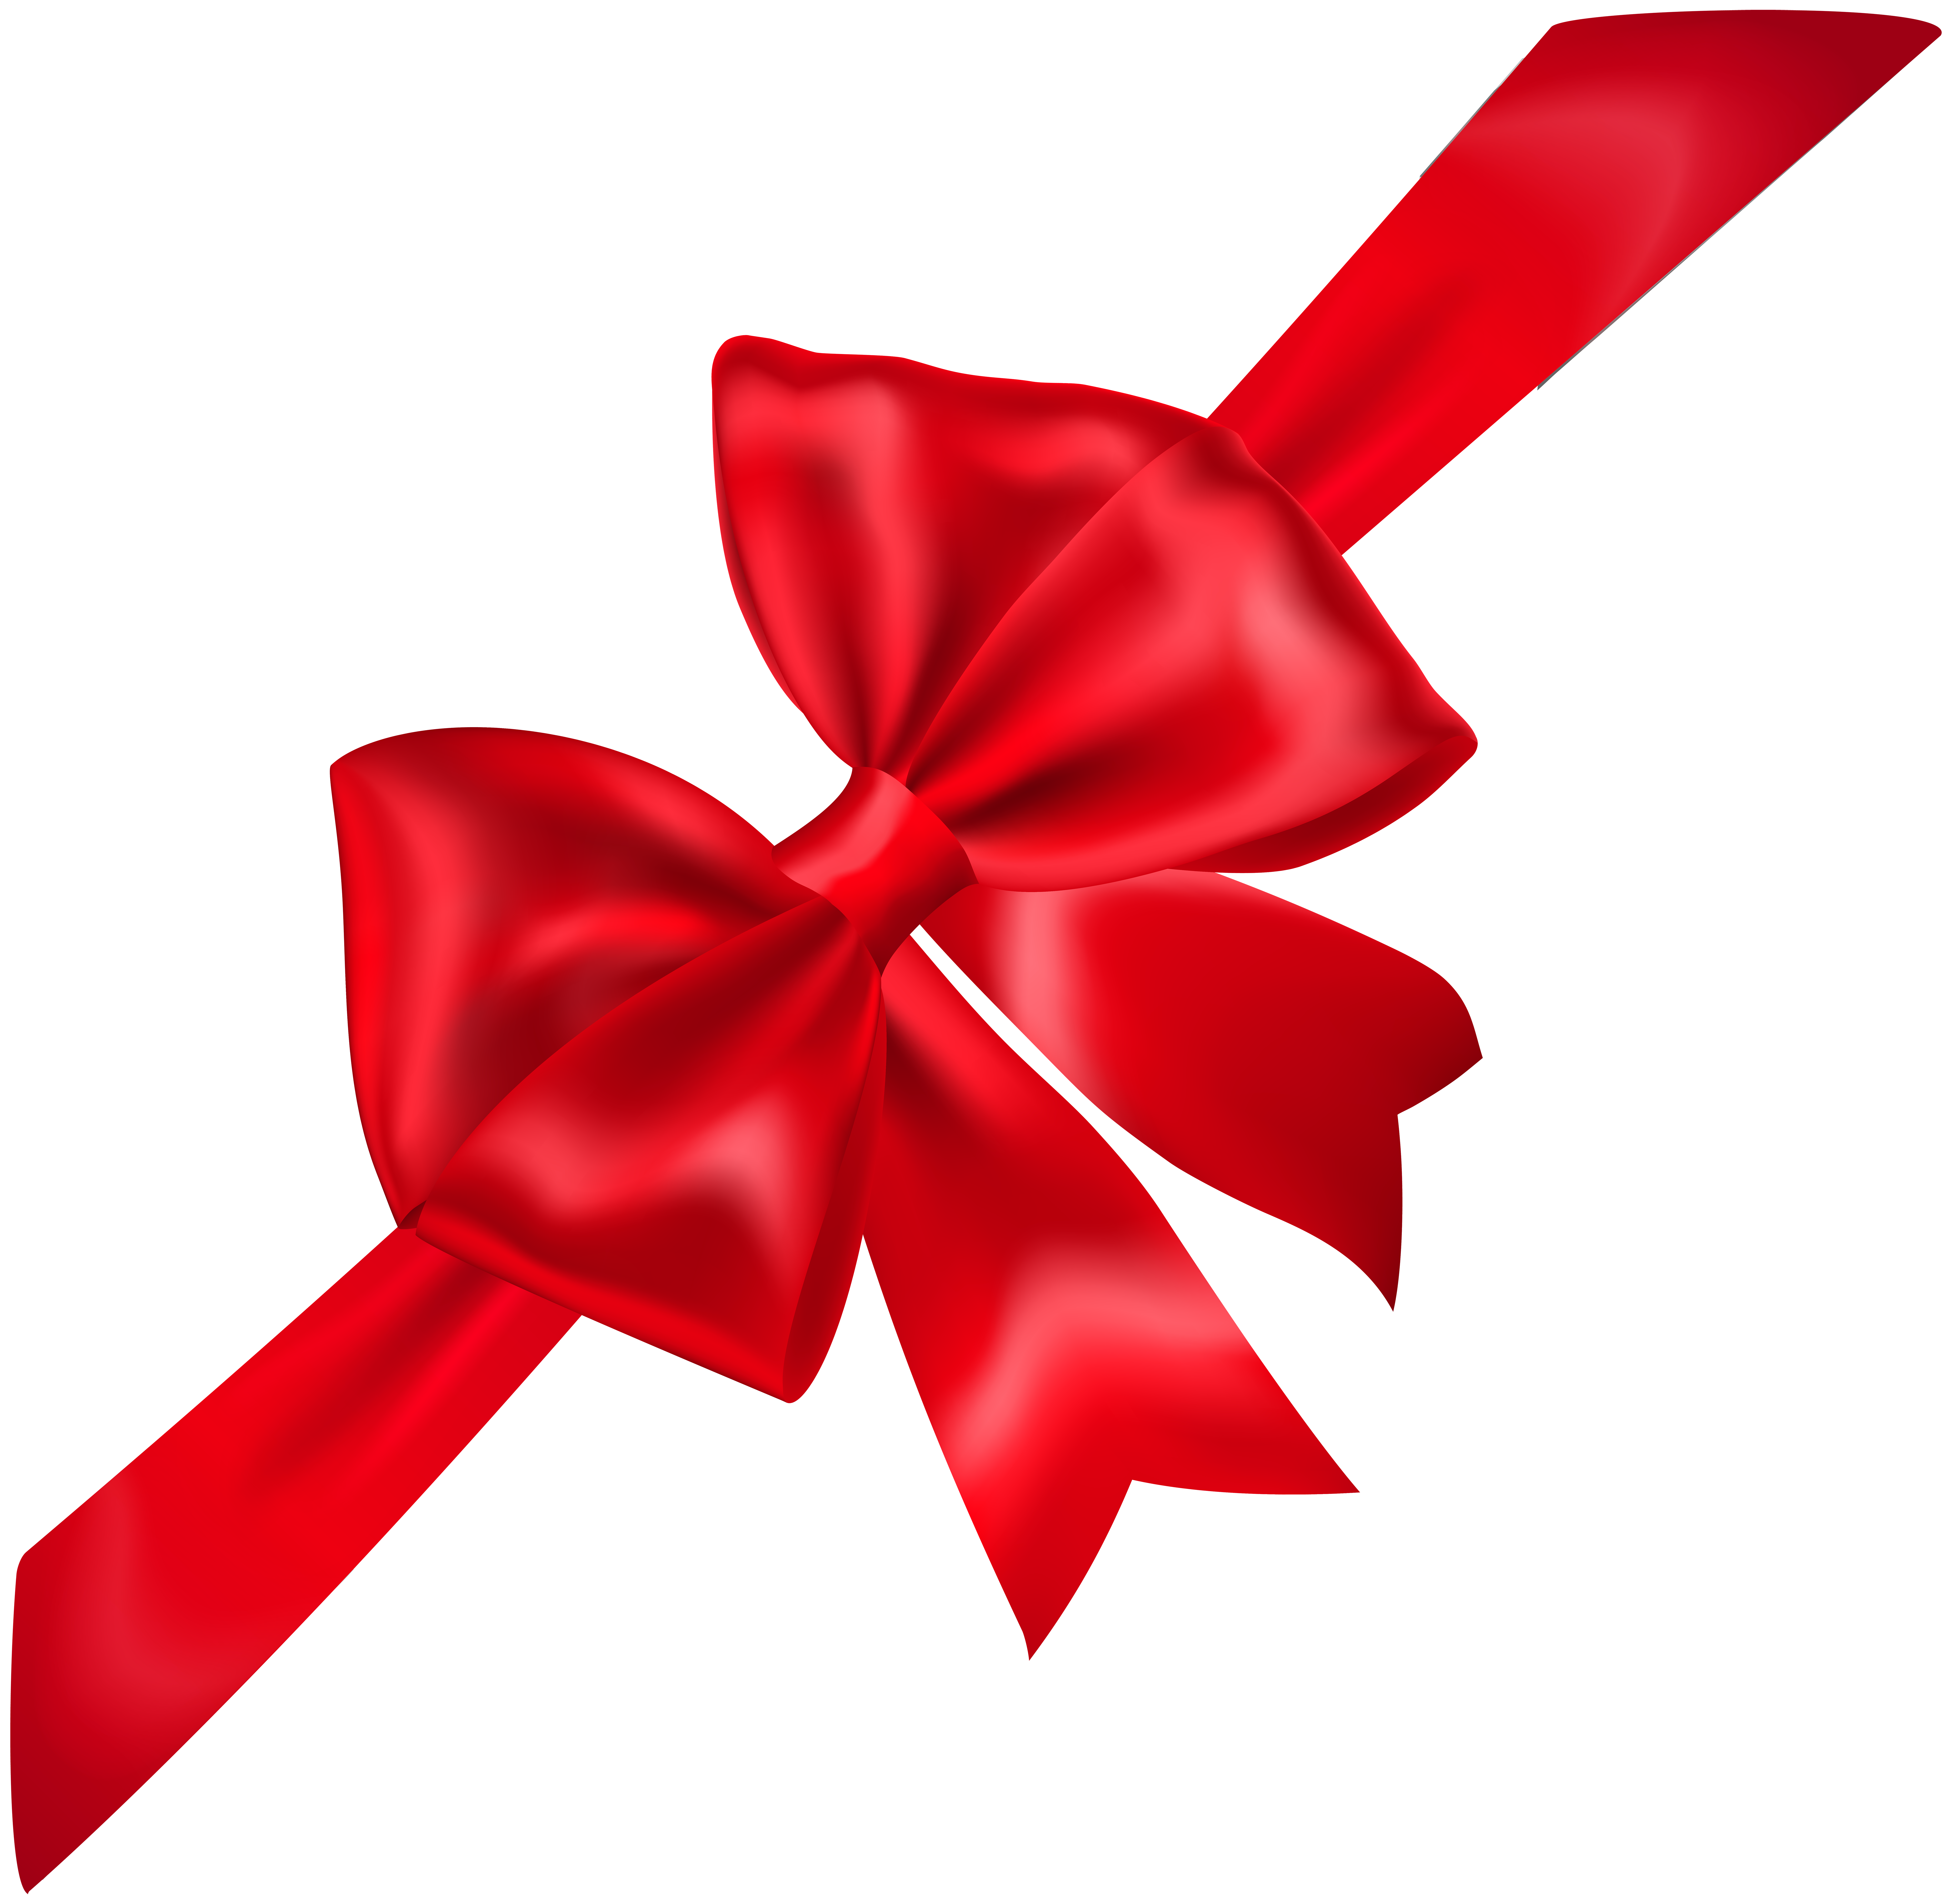 Red Bow Transparent Png Image Gallery Yopriceville High Quality Images And Transparent Png Free Clipart Free Clip Art Clip Art Red Bow